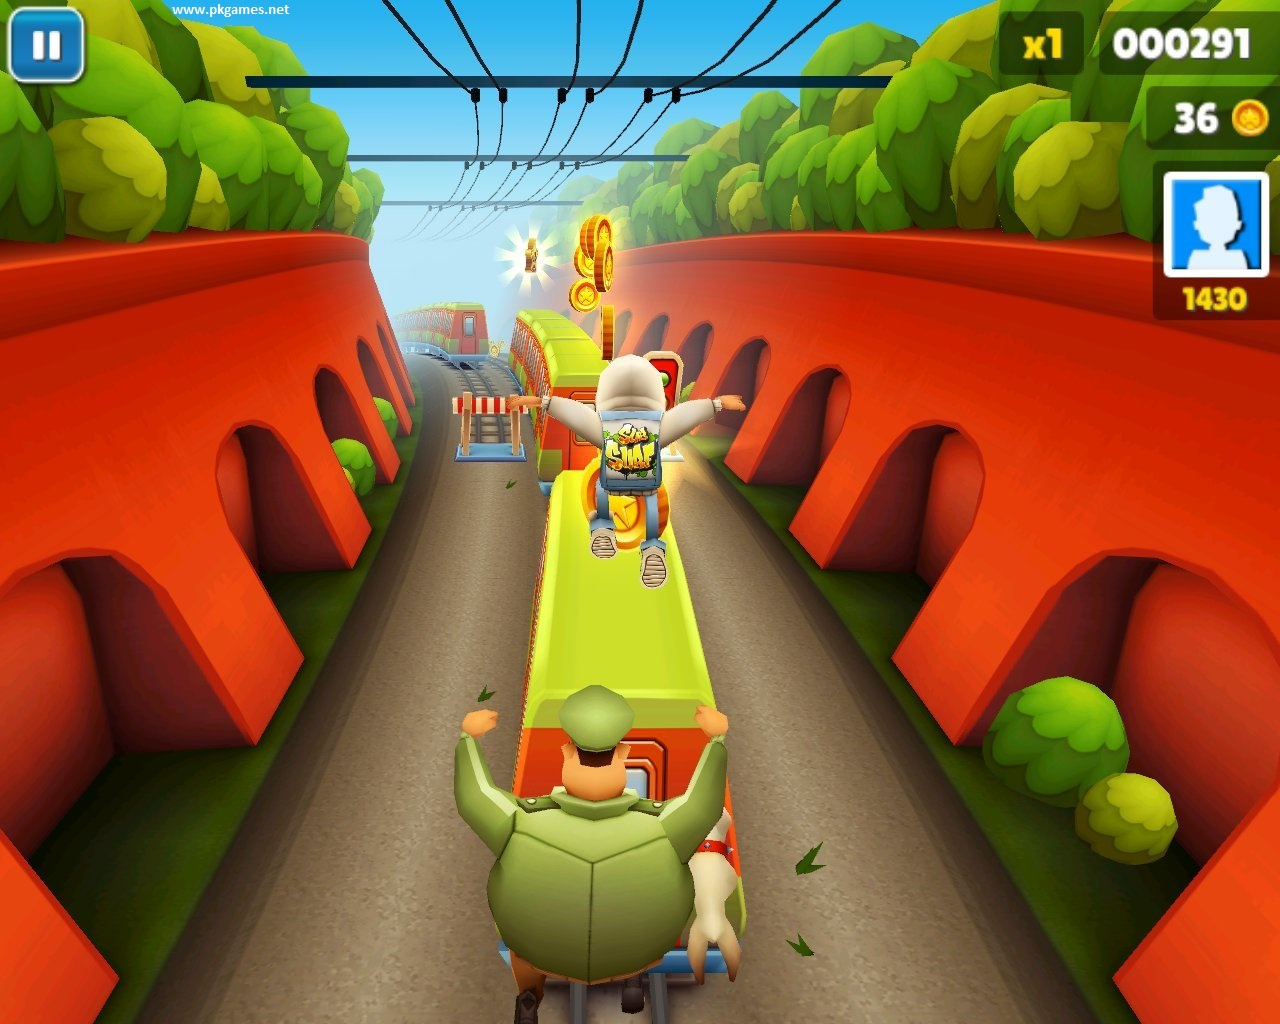 Free Download Pc Games And Software Subway Surfers Pc